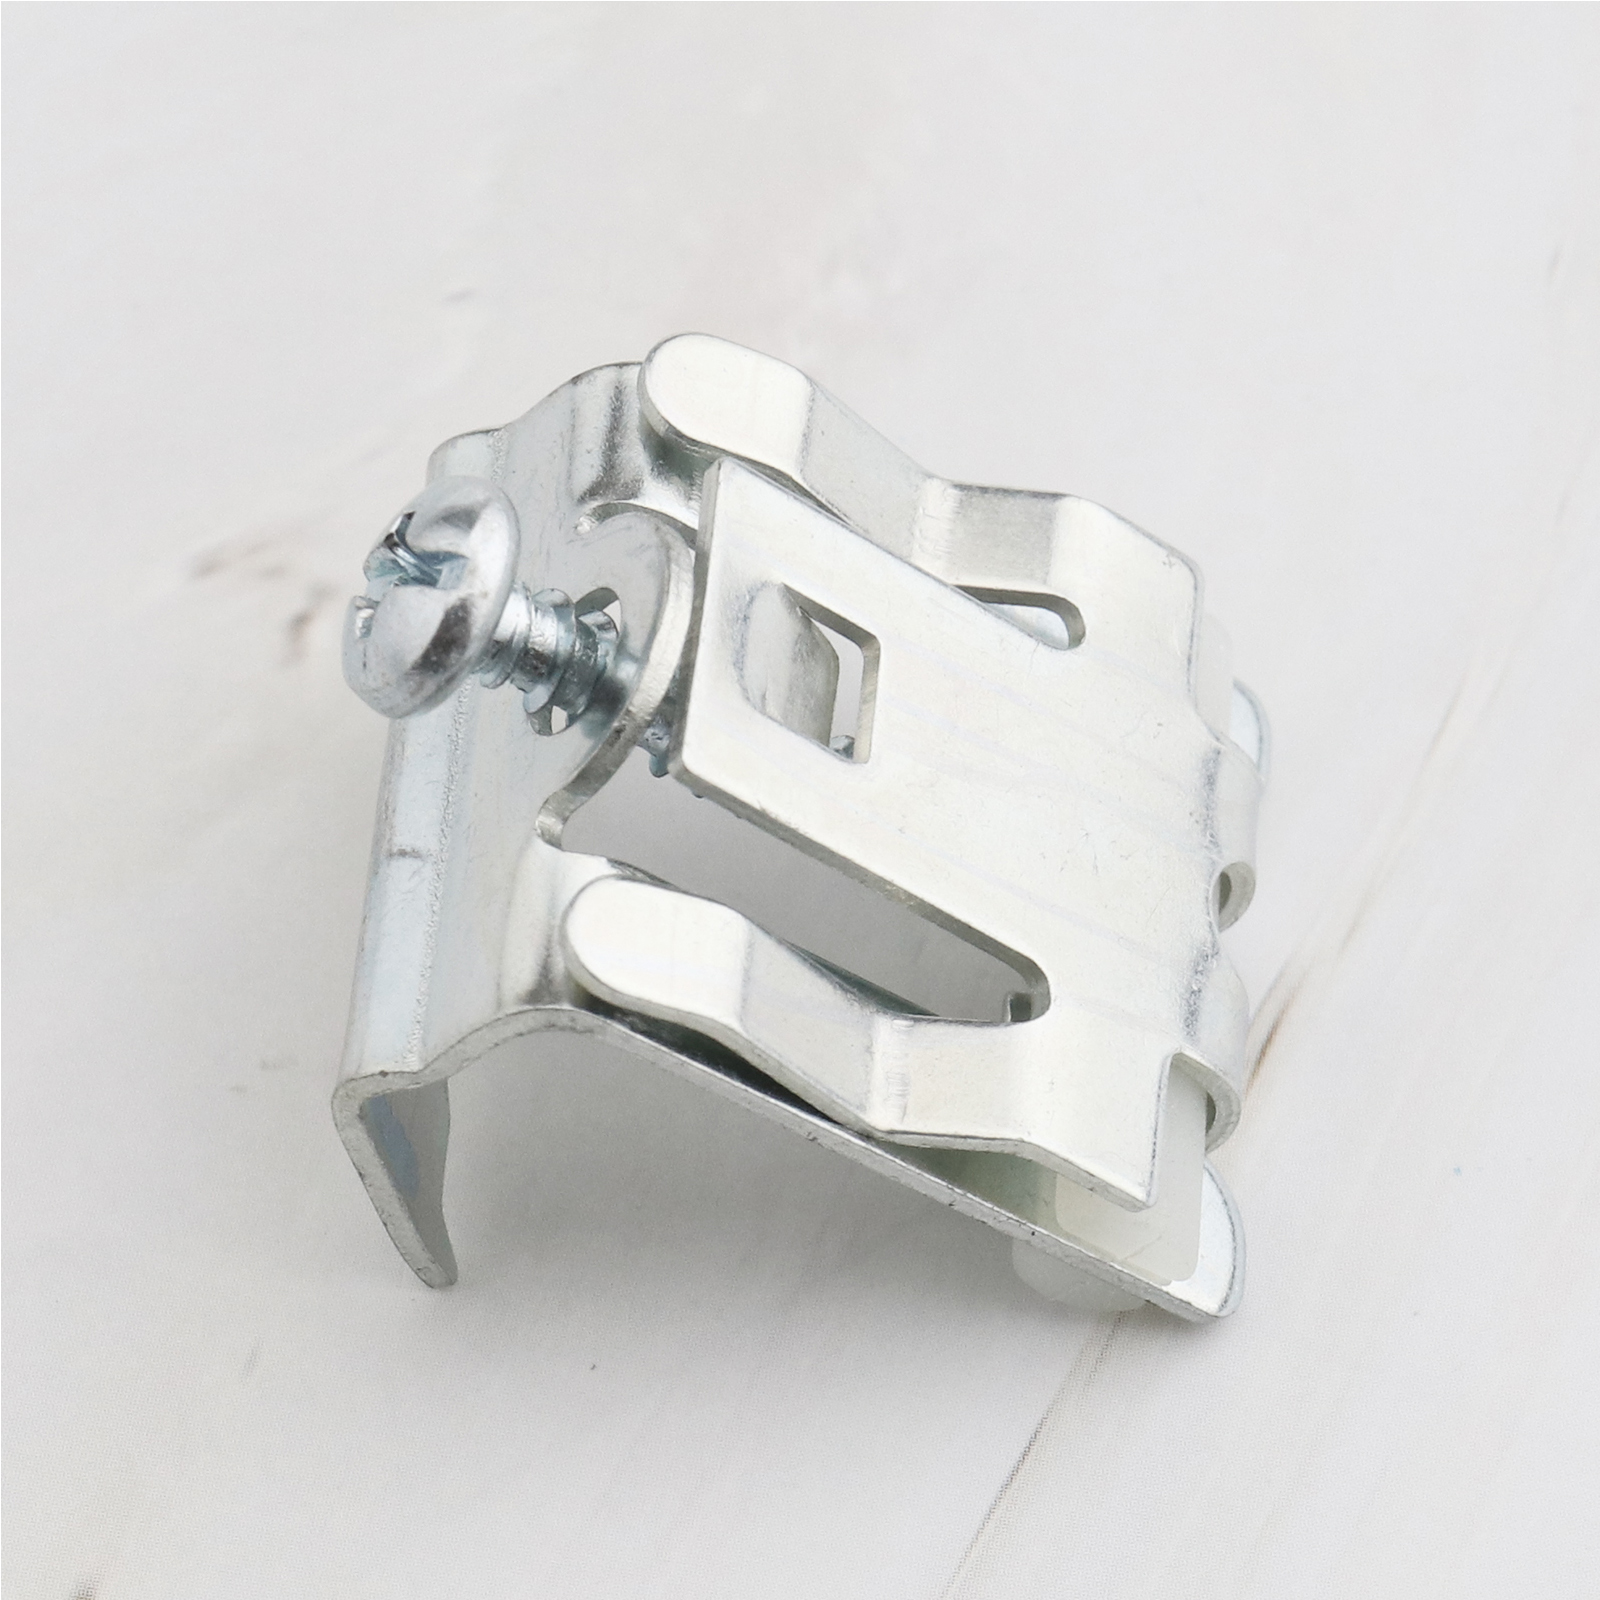 Stainless Steel Top Mount Stand Kitchen Sink Clips Brackets Clamps 10 20pcs Other Home Plumbing Fixtures Home Improvement